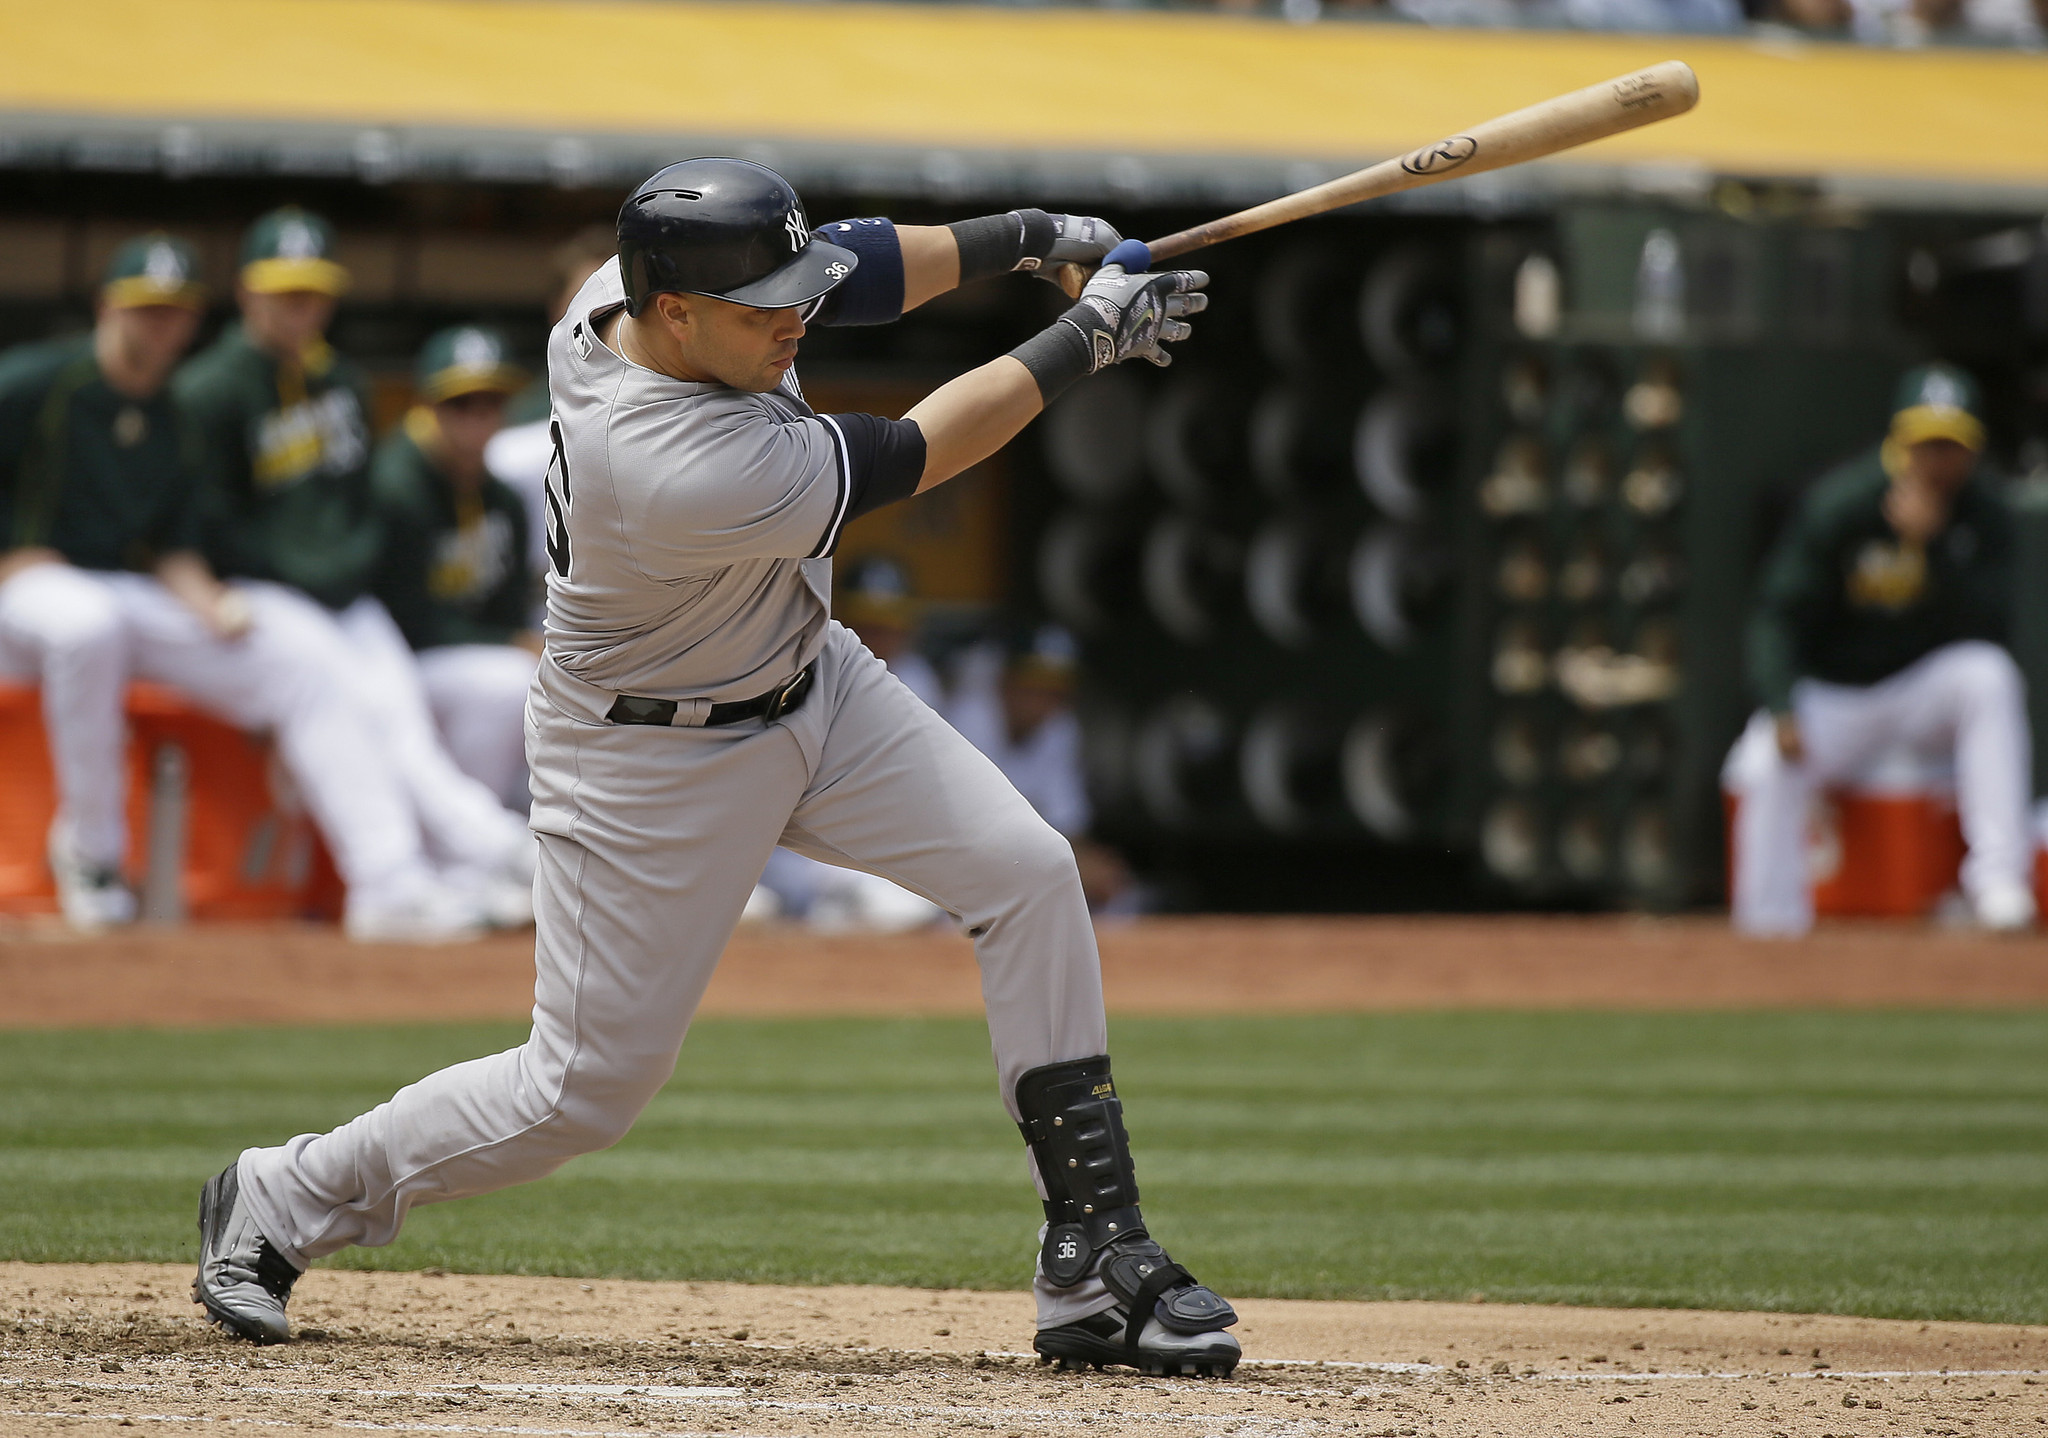 Castro Beltran Help Yankees Beat A S For 4th Straight Win